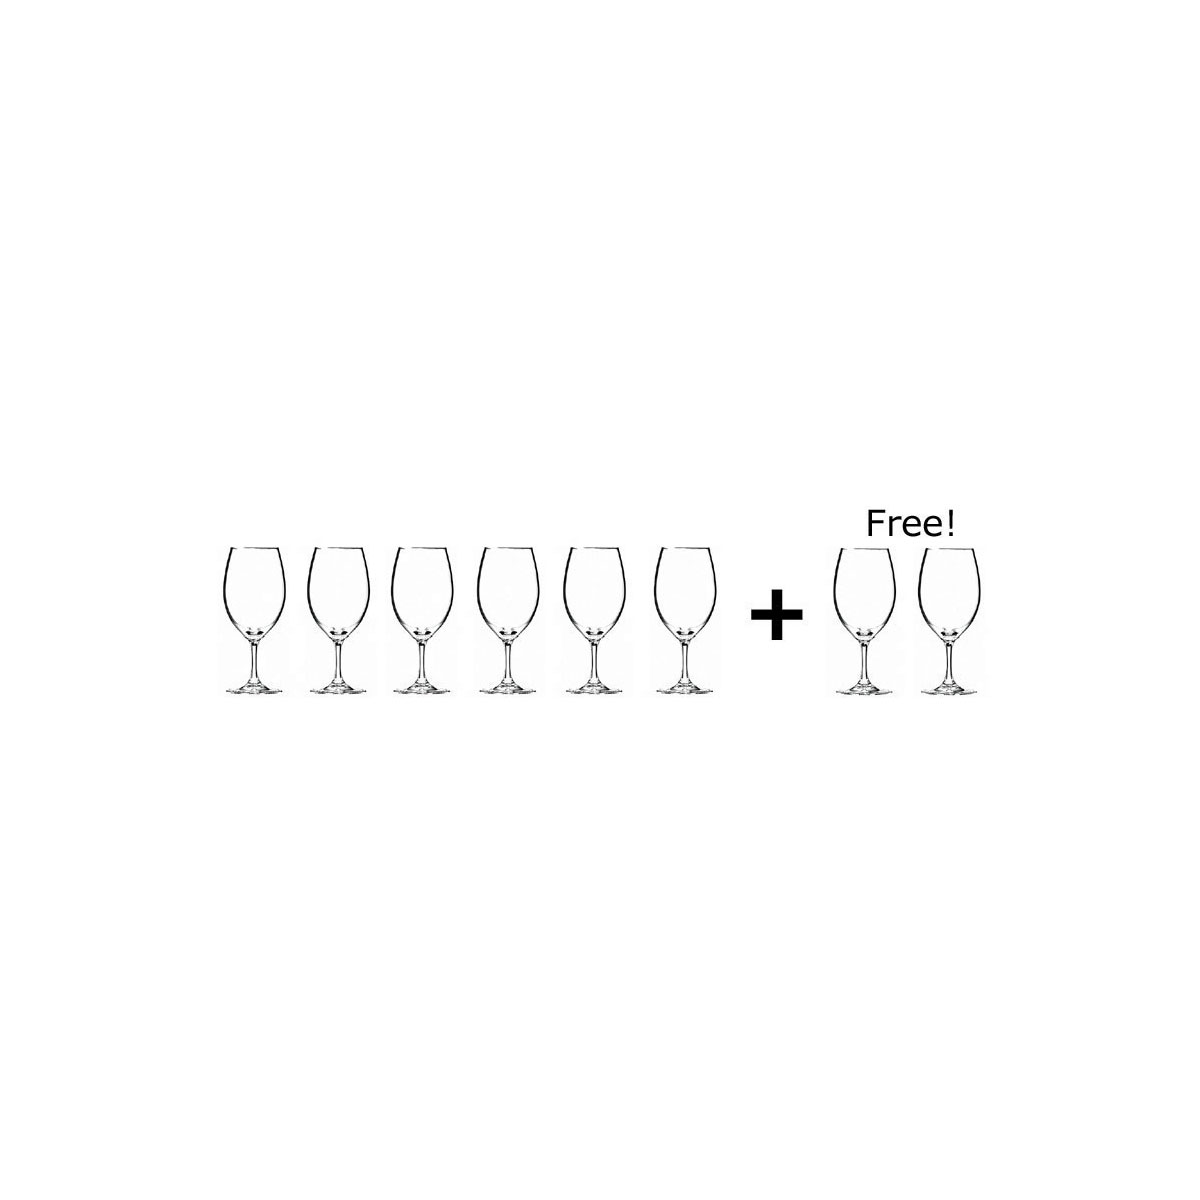 Riedel Ouverture, Magnum Glass Crystal Wine Glasses Set 6 + 2 Free